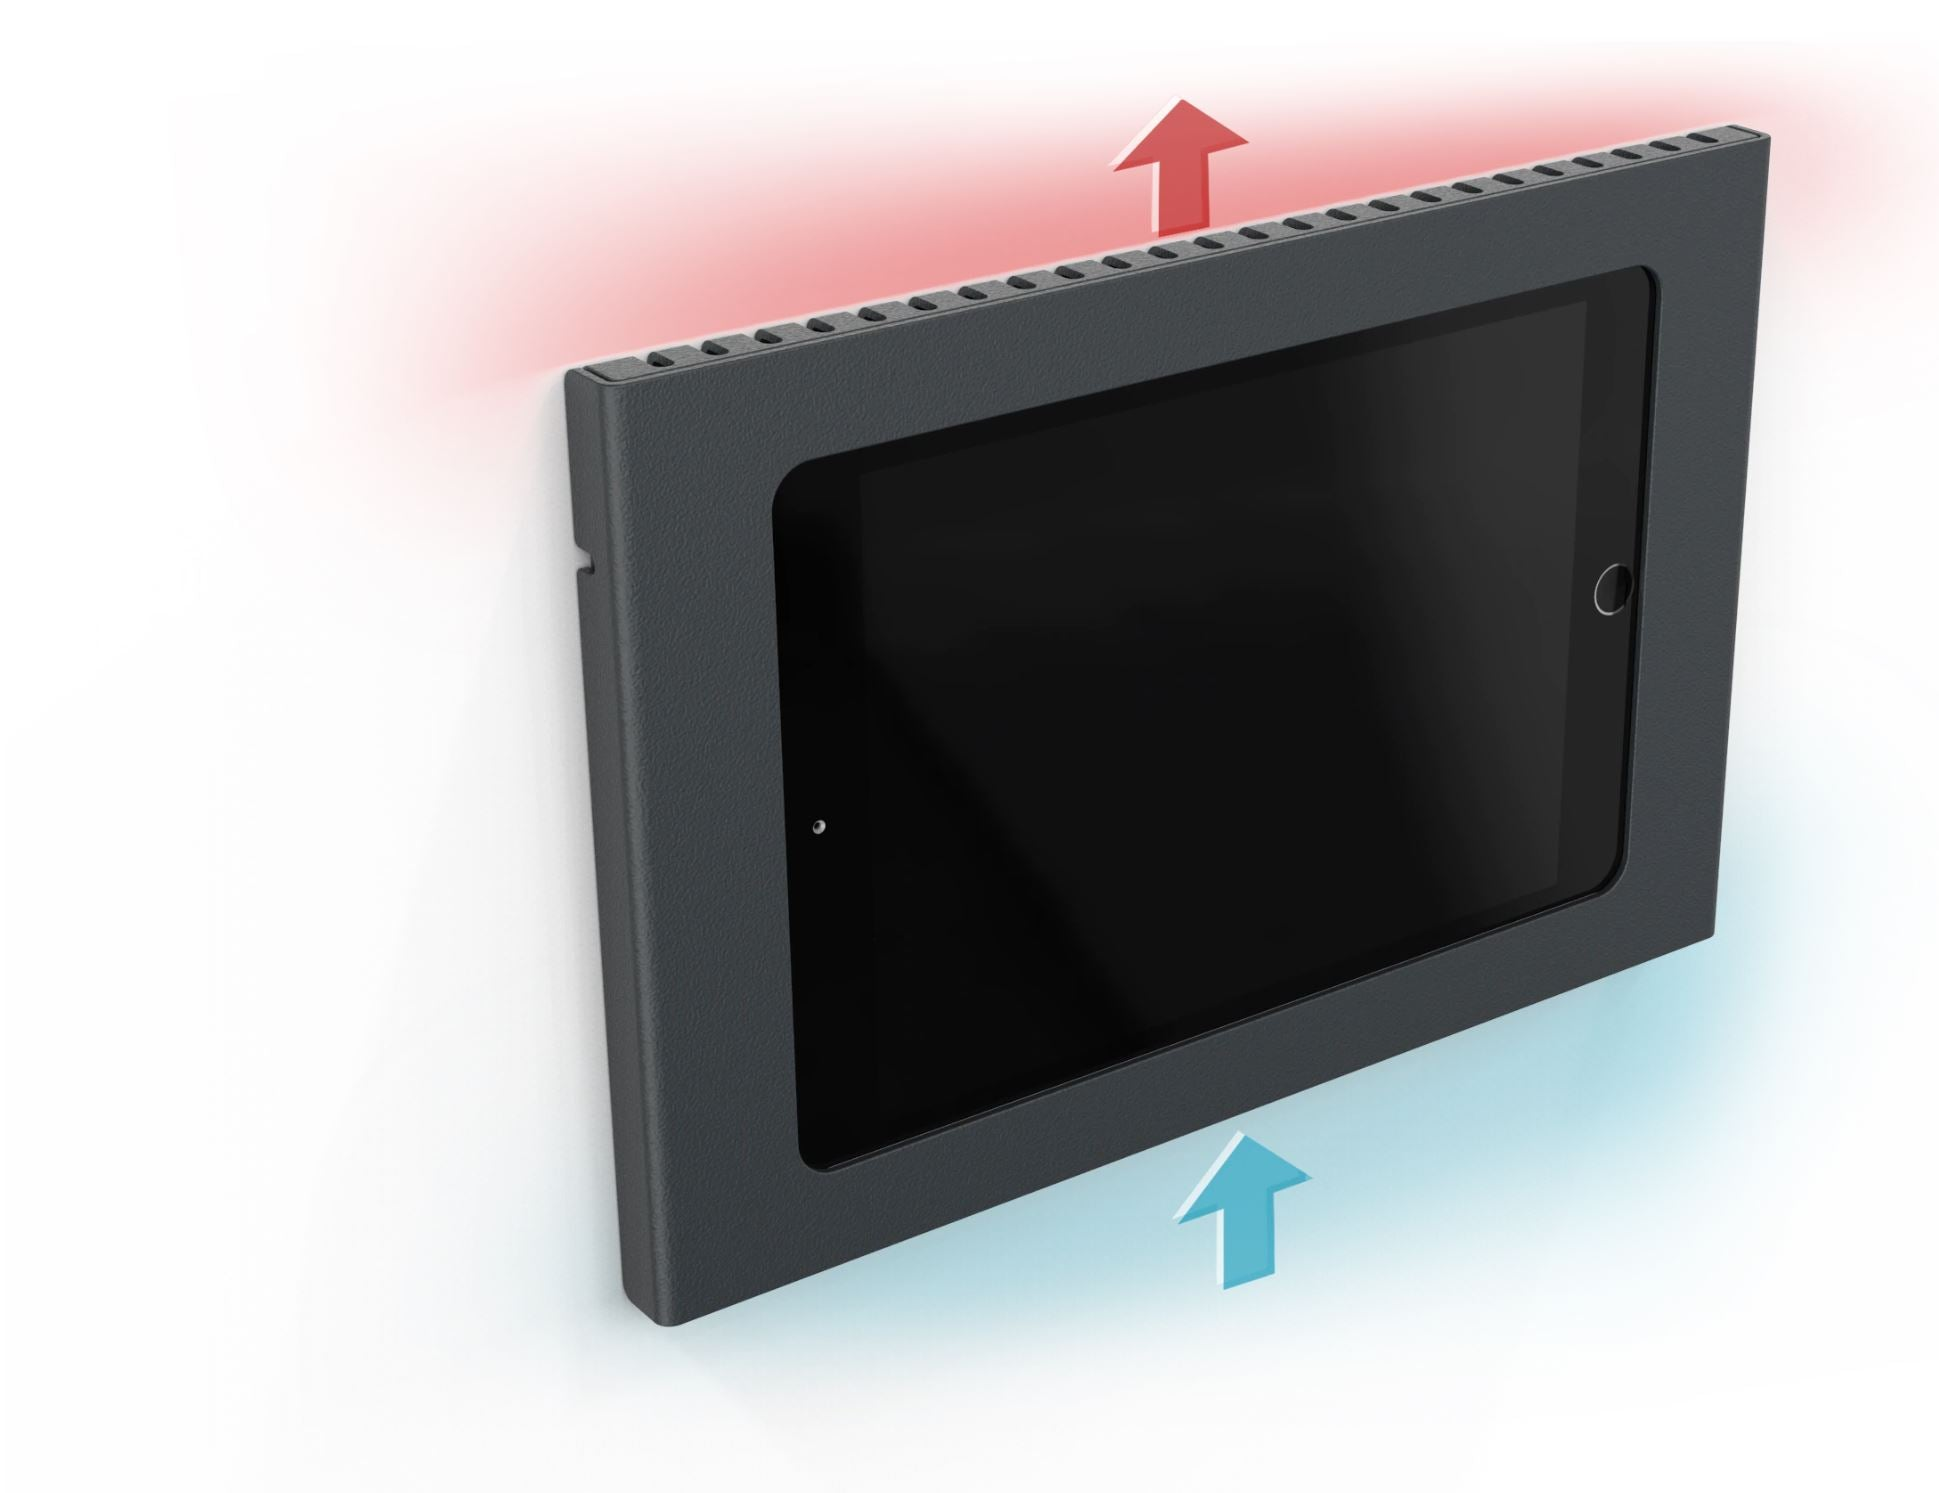 Heckler Wall Mount with PoE for iPad 10.2, black color, ventilation system